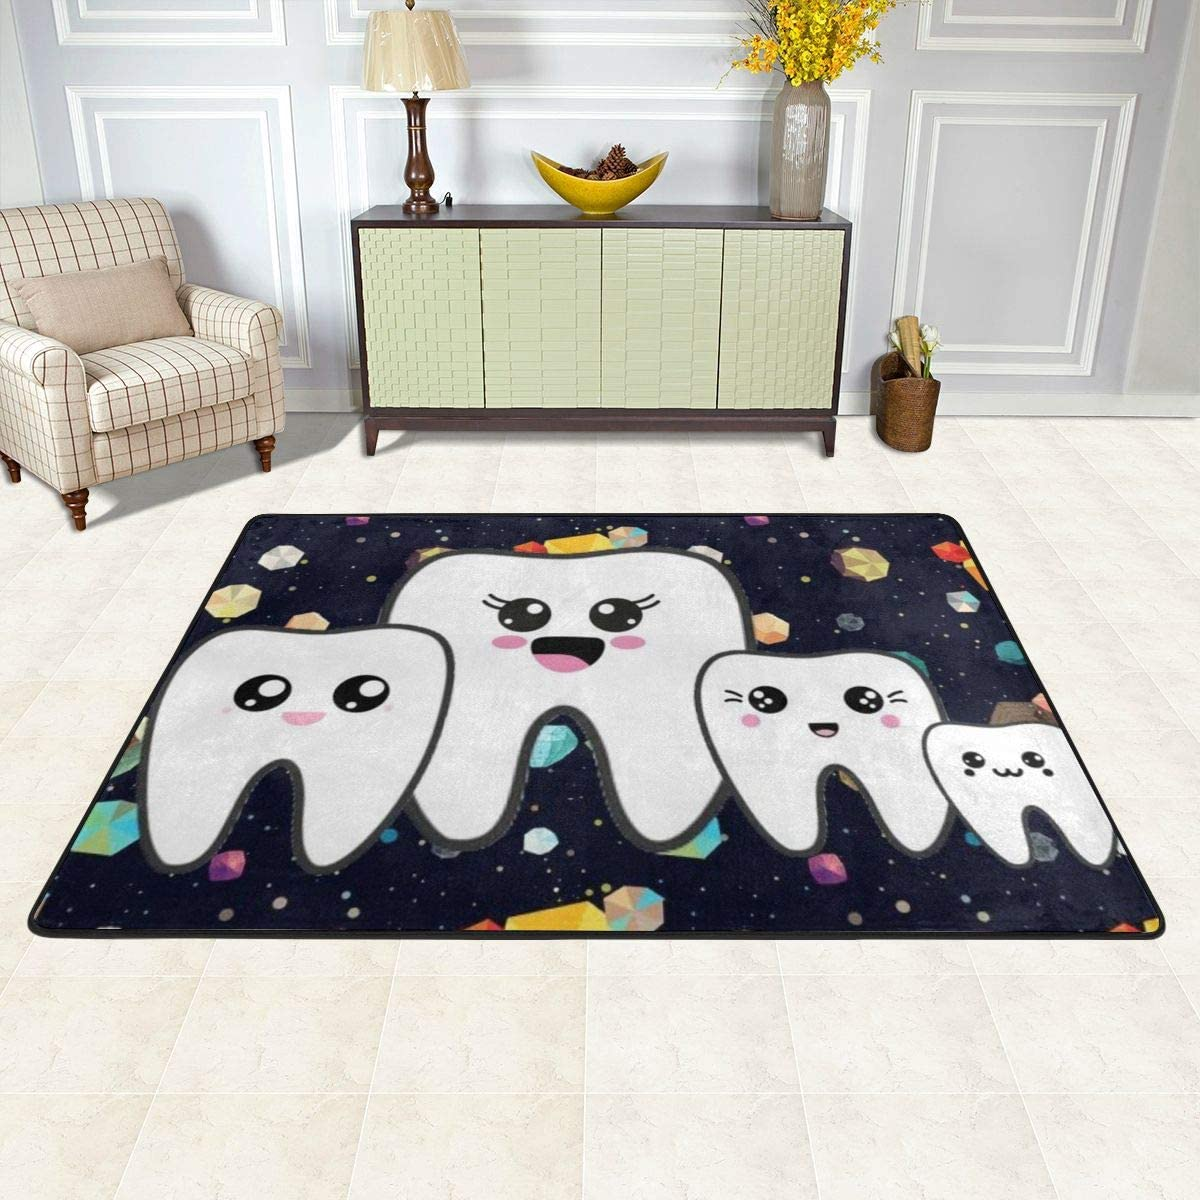 Cozy Carpet, Cute Tooth Starry Sky Non Skid Area Rugs Bathroom Rugs, Classic No Ball Room Mat for Office Tub Decoration 72X48 in